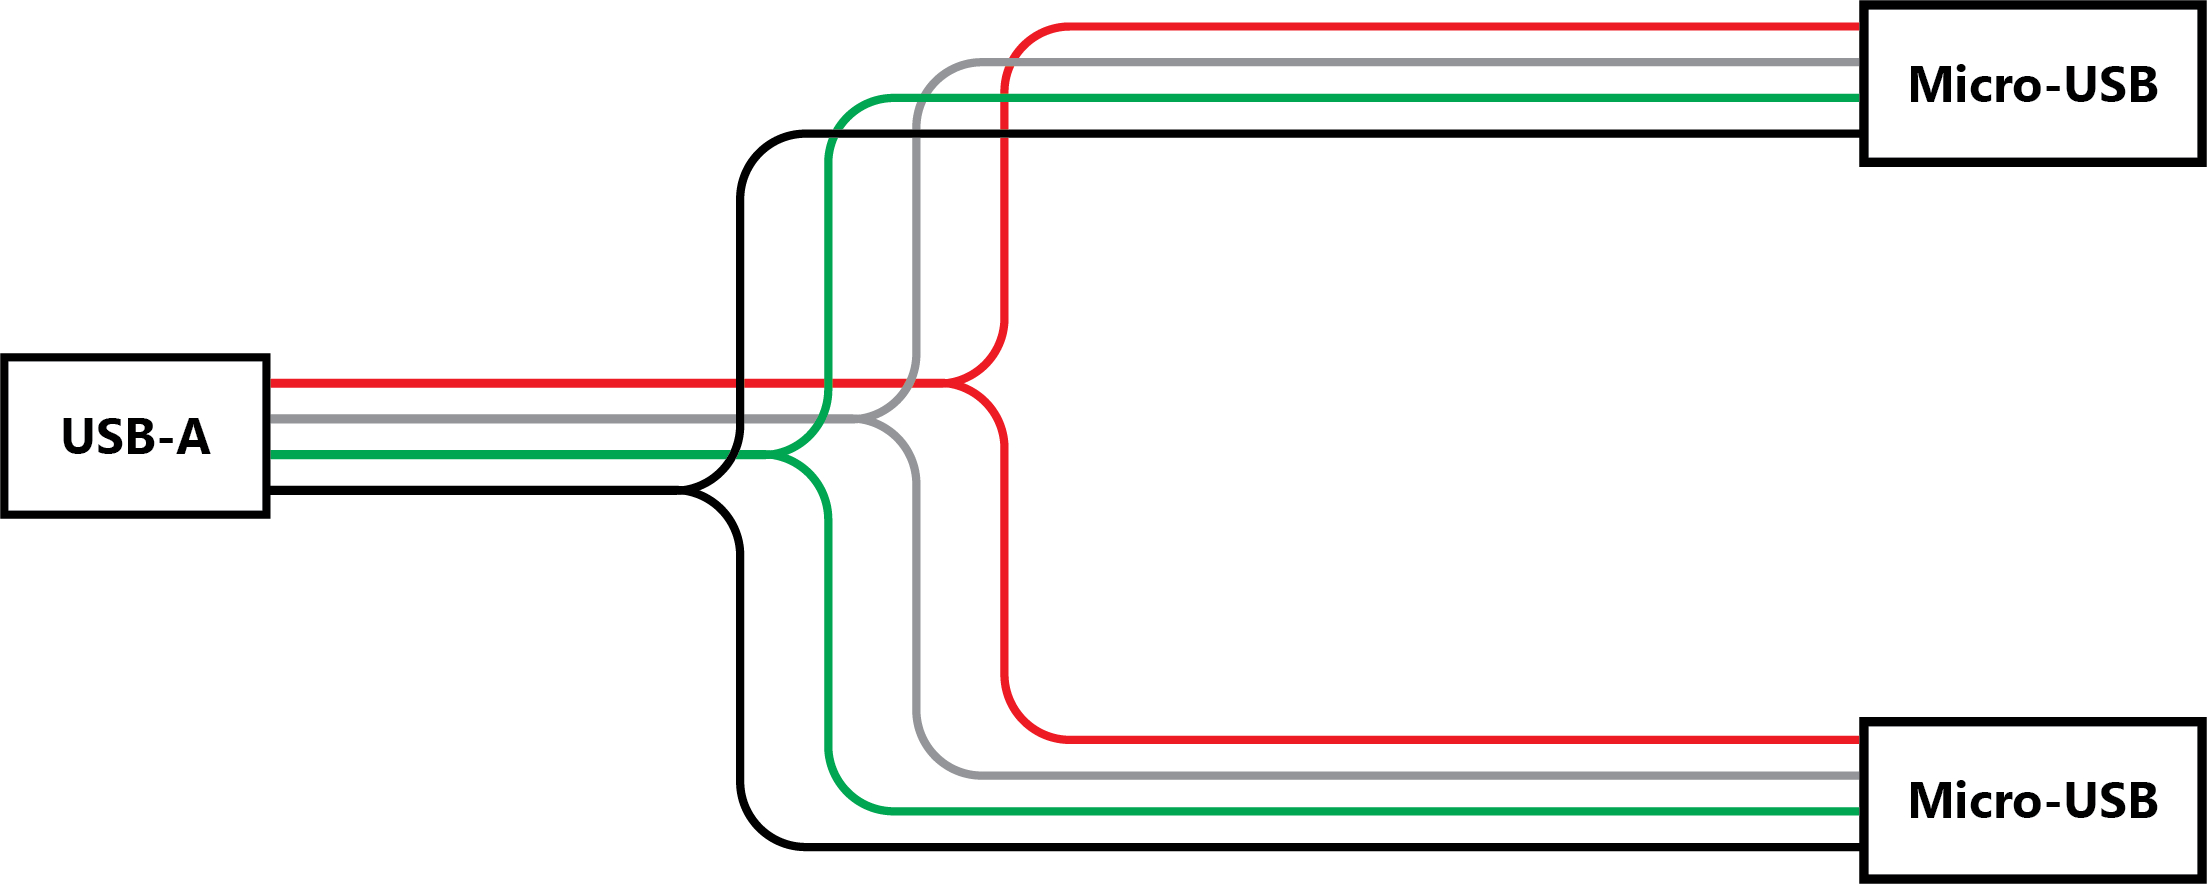 Wiring Diagram For Split Micro-Usb Cable? - Electrical Engineering - Wiring Diagram For A Usb Cable